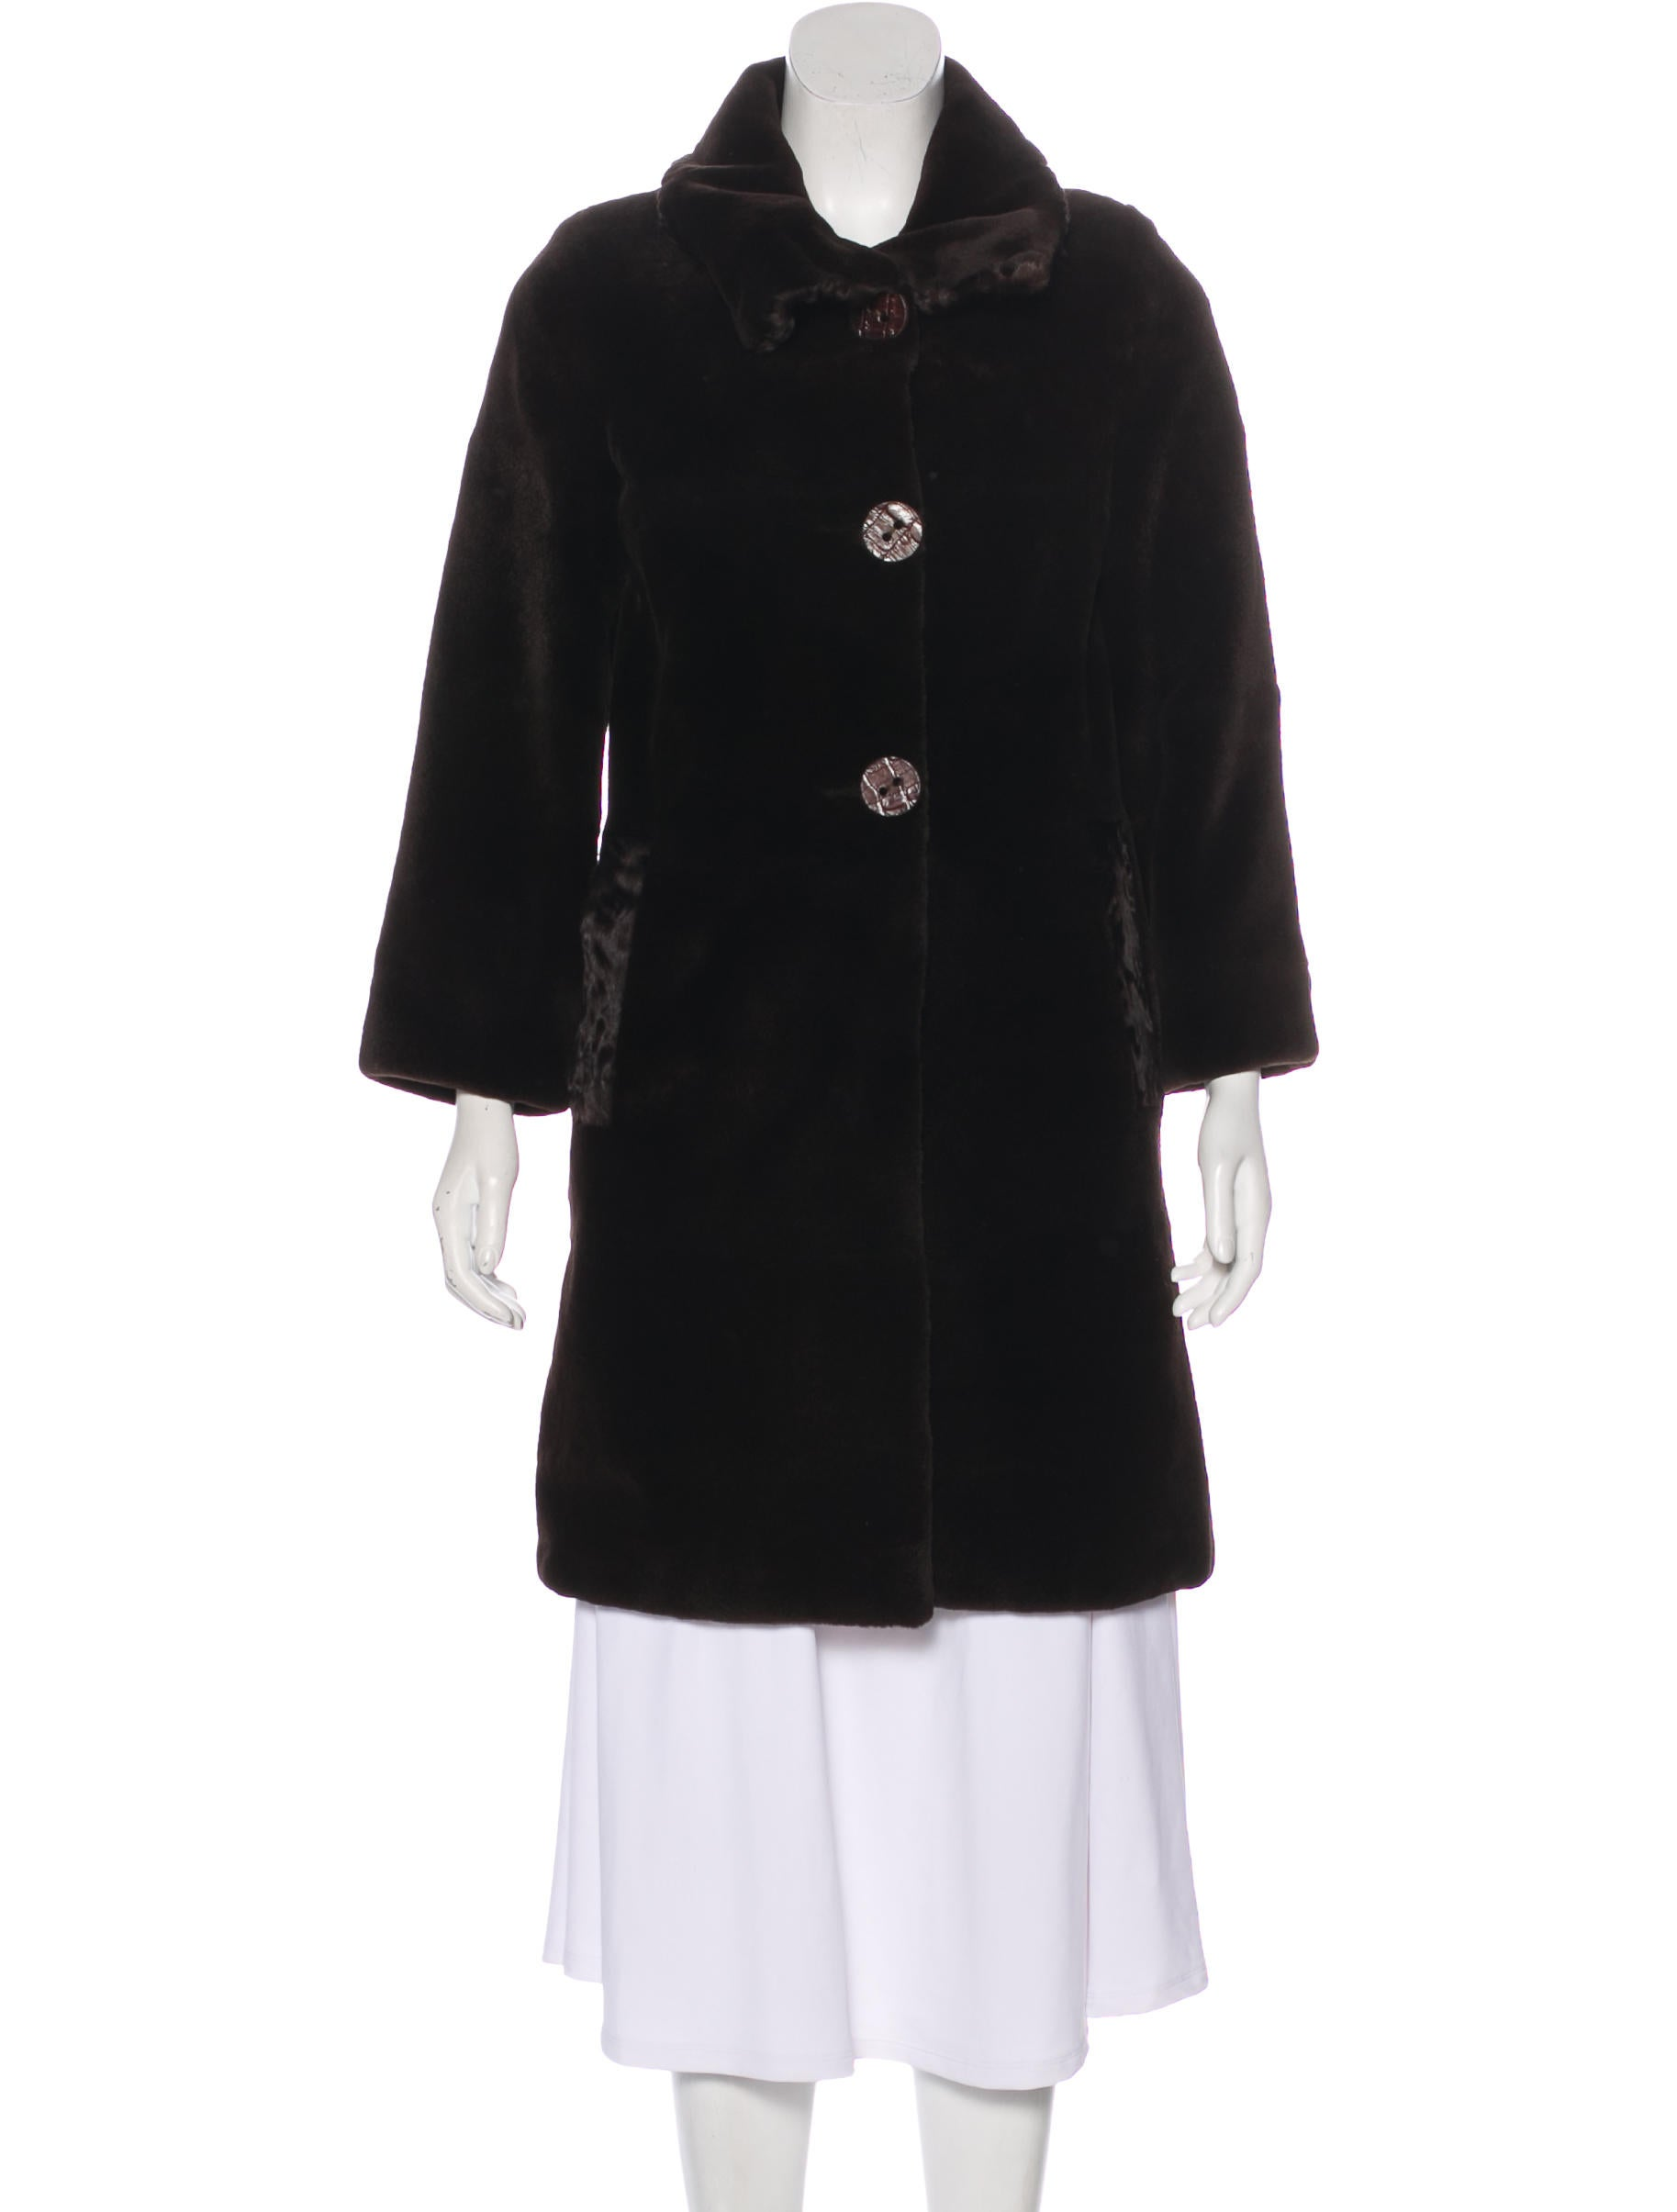 Clearance Manchester Great Sale Exclusive Giuliana Teso Sheared Mink & Broadtail Coat soYCwGAz11